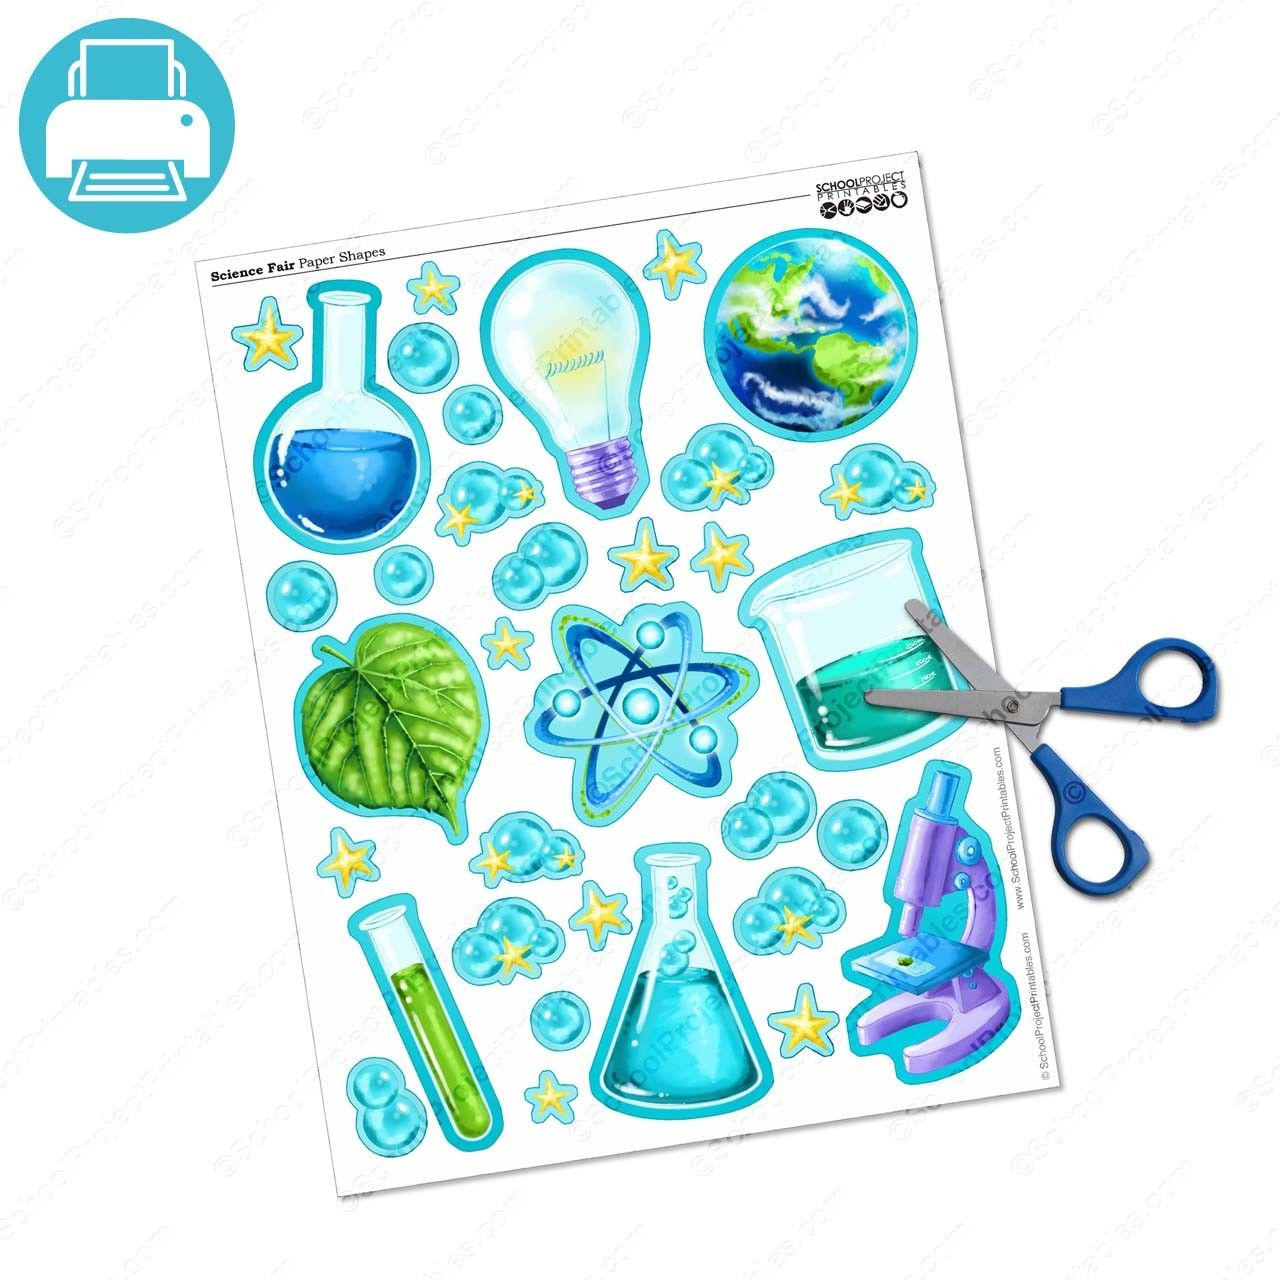 paper science projects Cheap and easy science fair projects seem to be harder and harder to find this how to guide will demonstrate several very affordable projects you can use to make.